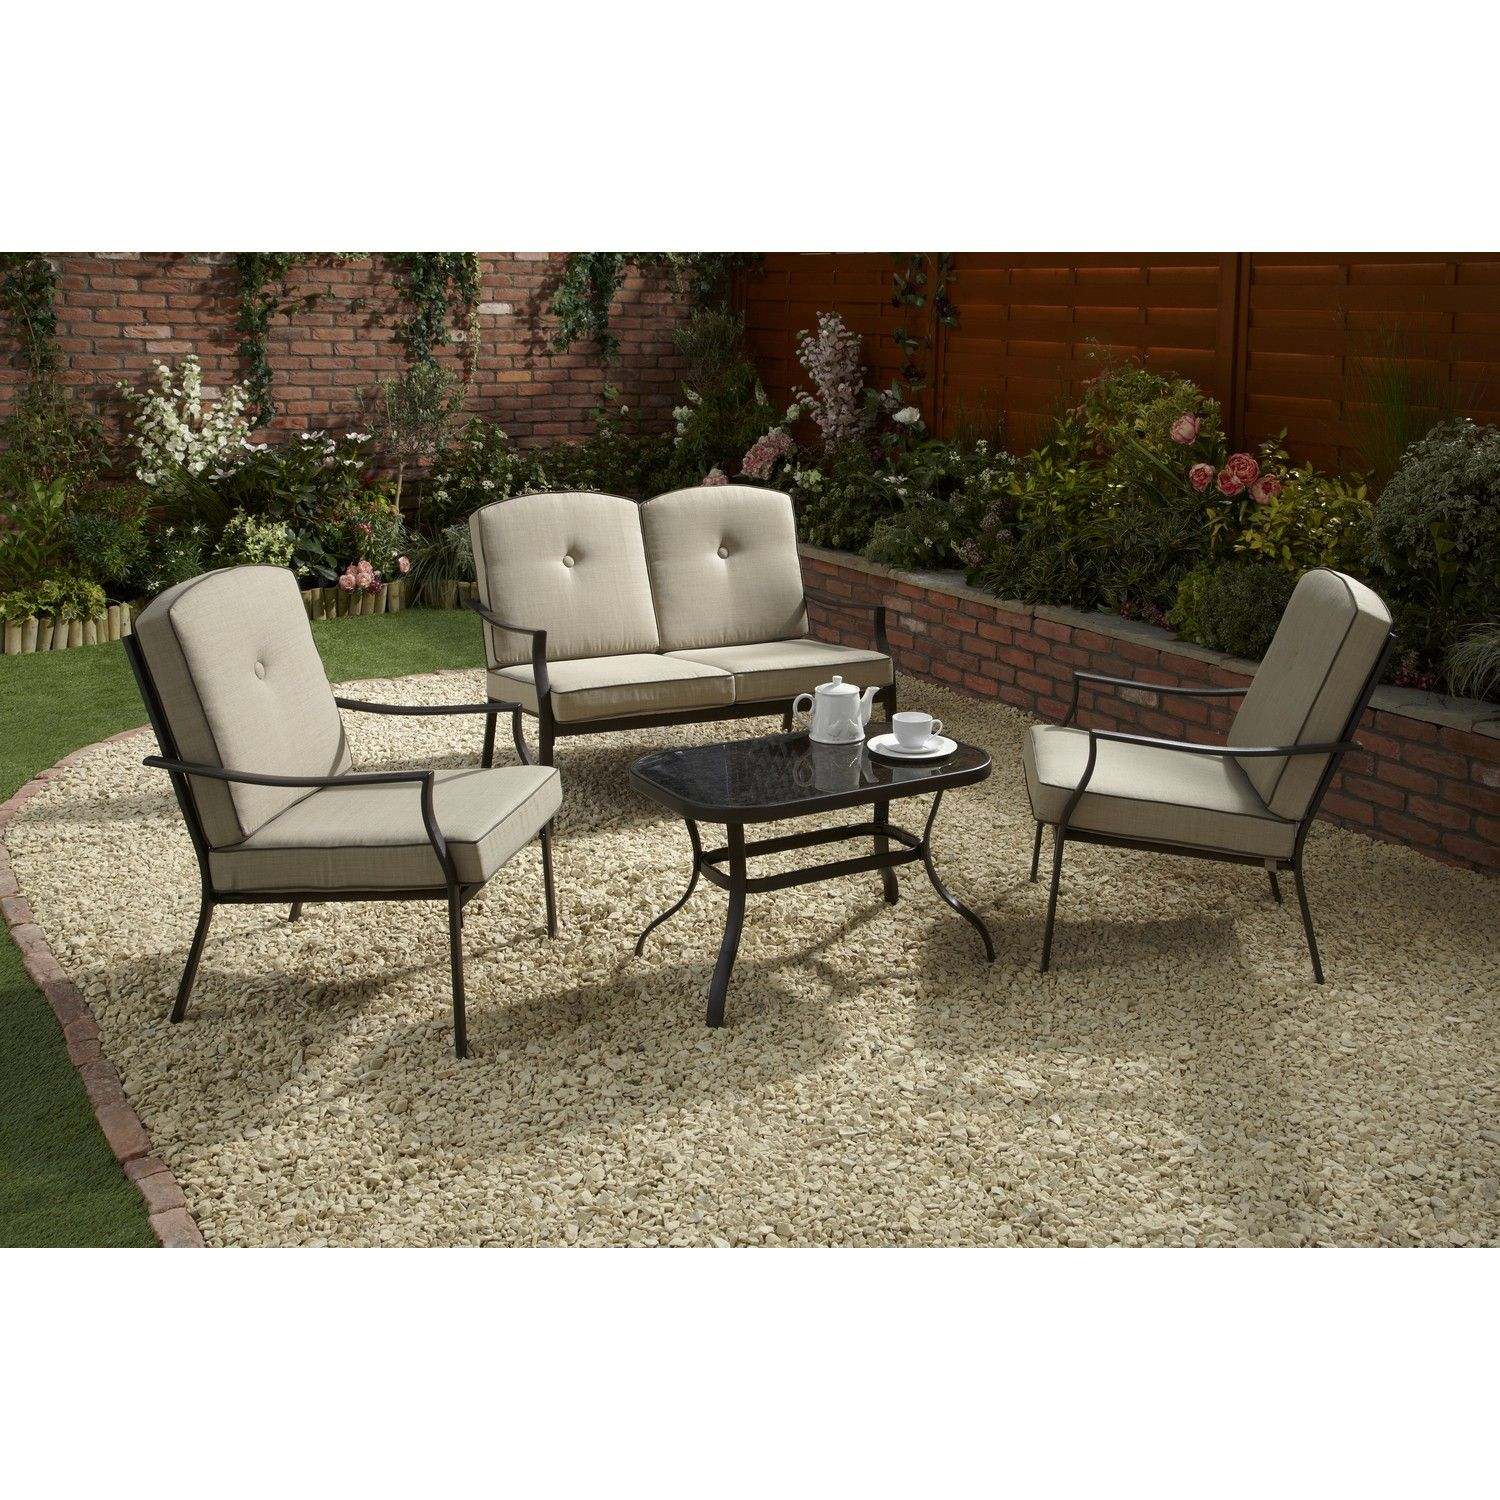 Two Seater Patio Set Part - 23: ... Alfresco Dining Companion For Any Garden Or Patio. Featuring A Stylish  Beige And Black Design, This Wonderful Set Includes 2 Single Chairs, 1 Two  Seater ...